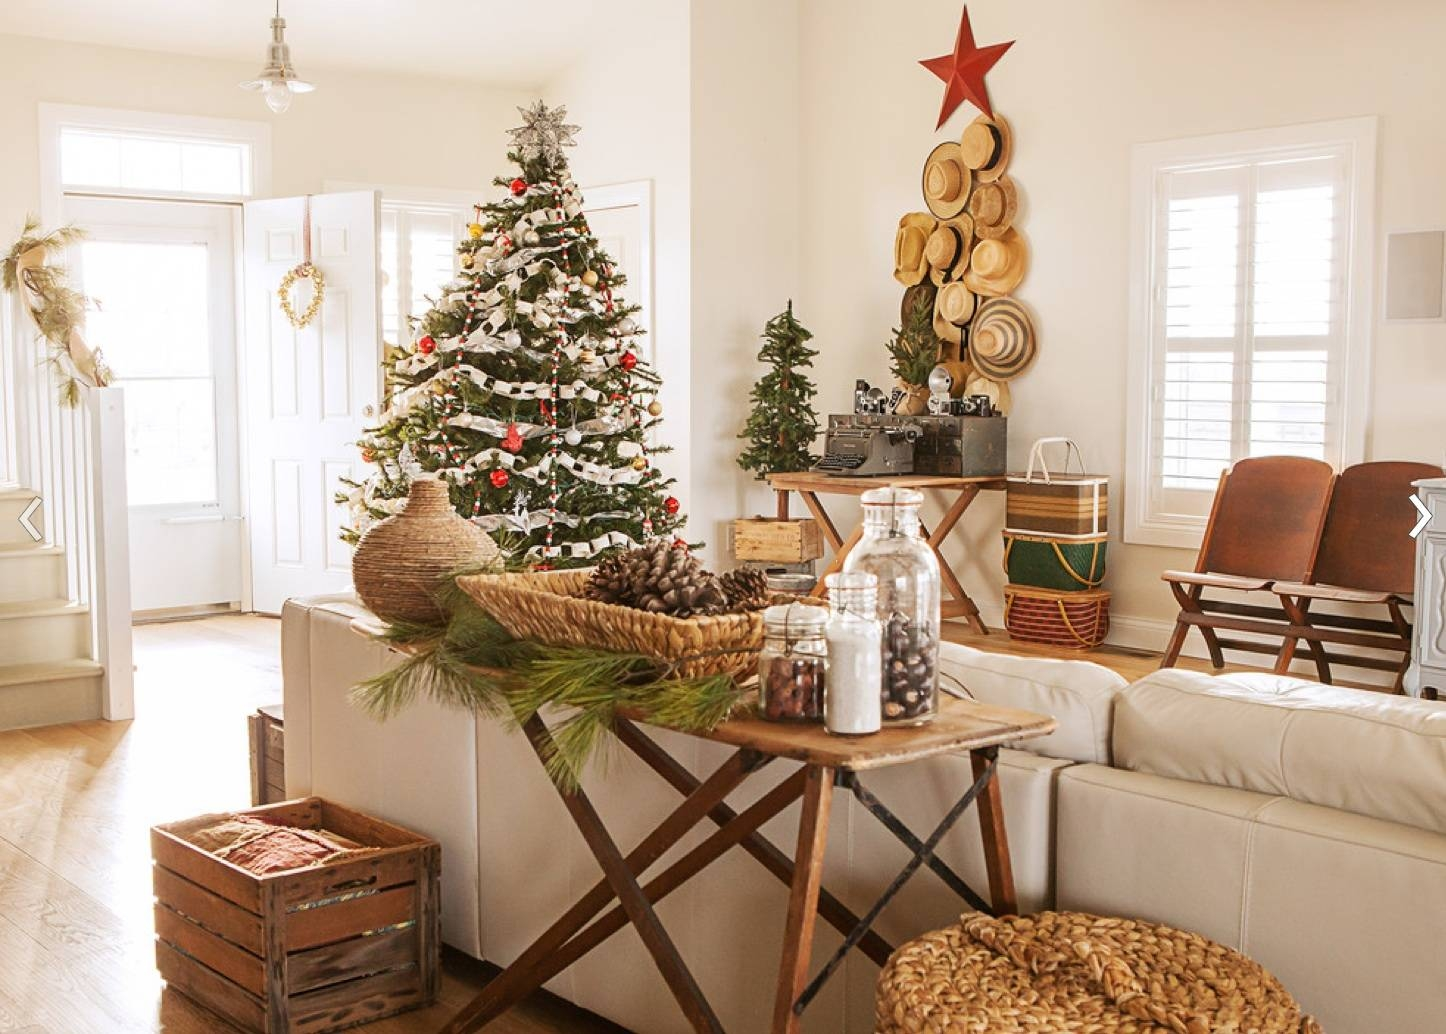 Rustic Christmas Decorating Ideas — Unique Hardscape Design intended for Rustic Christmas Coffee Table Decors (Image 27 of 30)